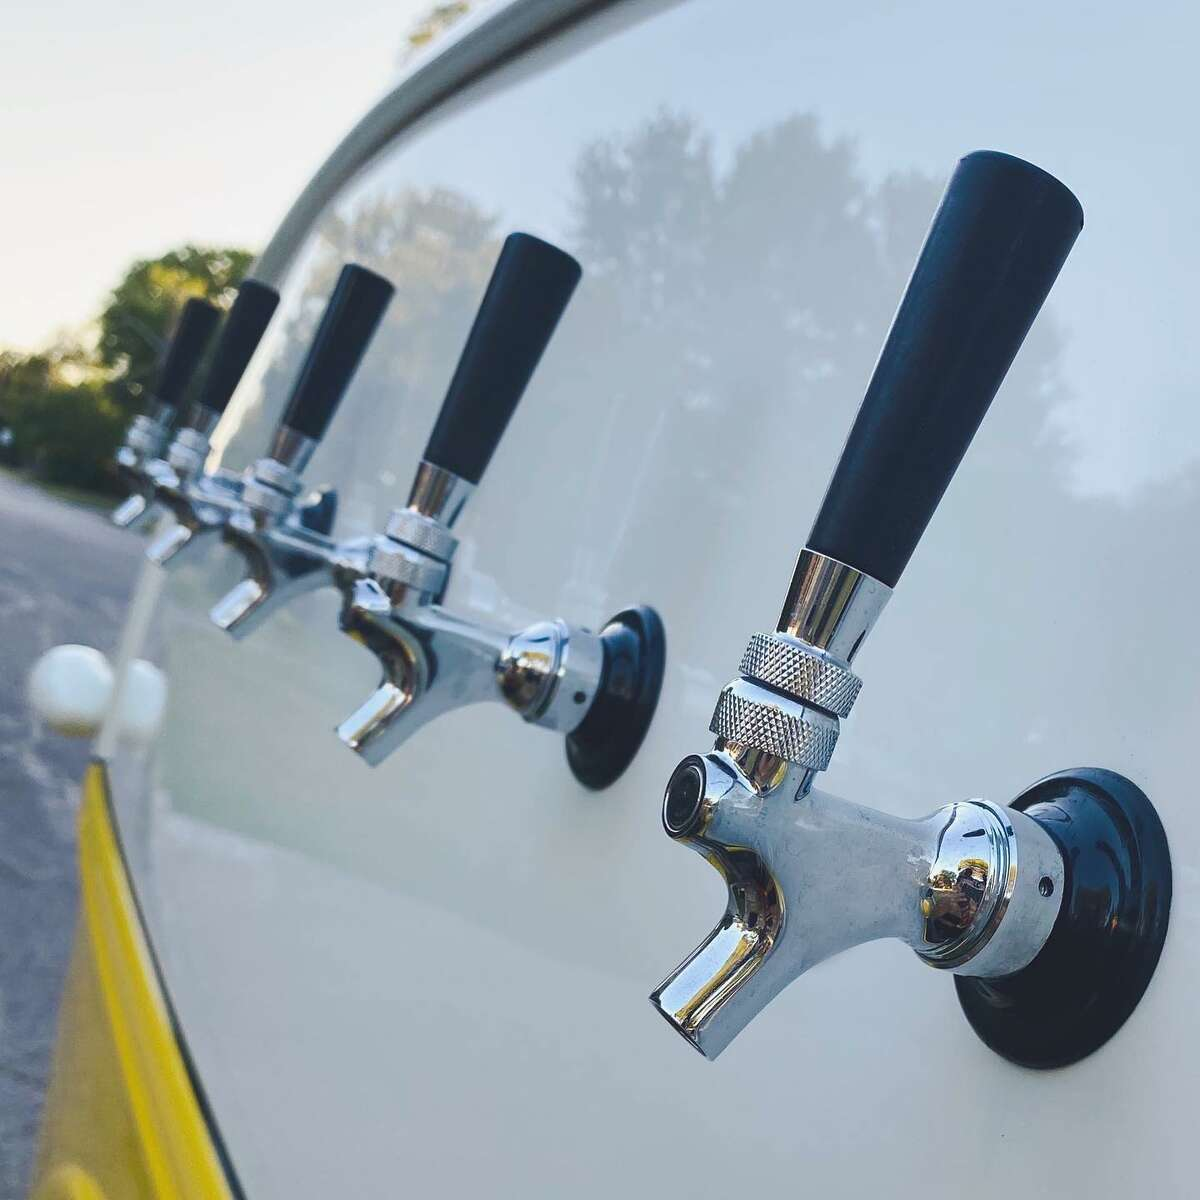 The truck has five taps and can serve any type of alcoholic or non-alcoholic beverage a client chooses. Since the launch of the business, Ramirez and Combs said local beers and wines have been a big hit among their clients.